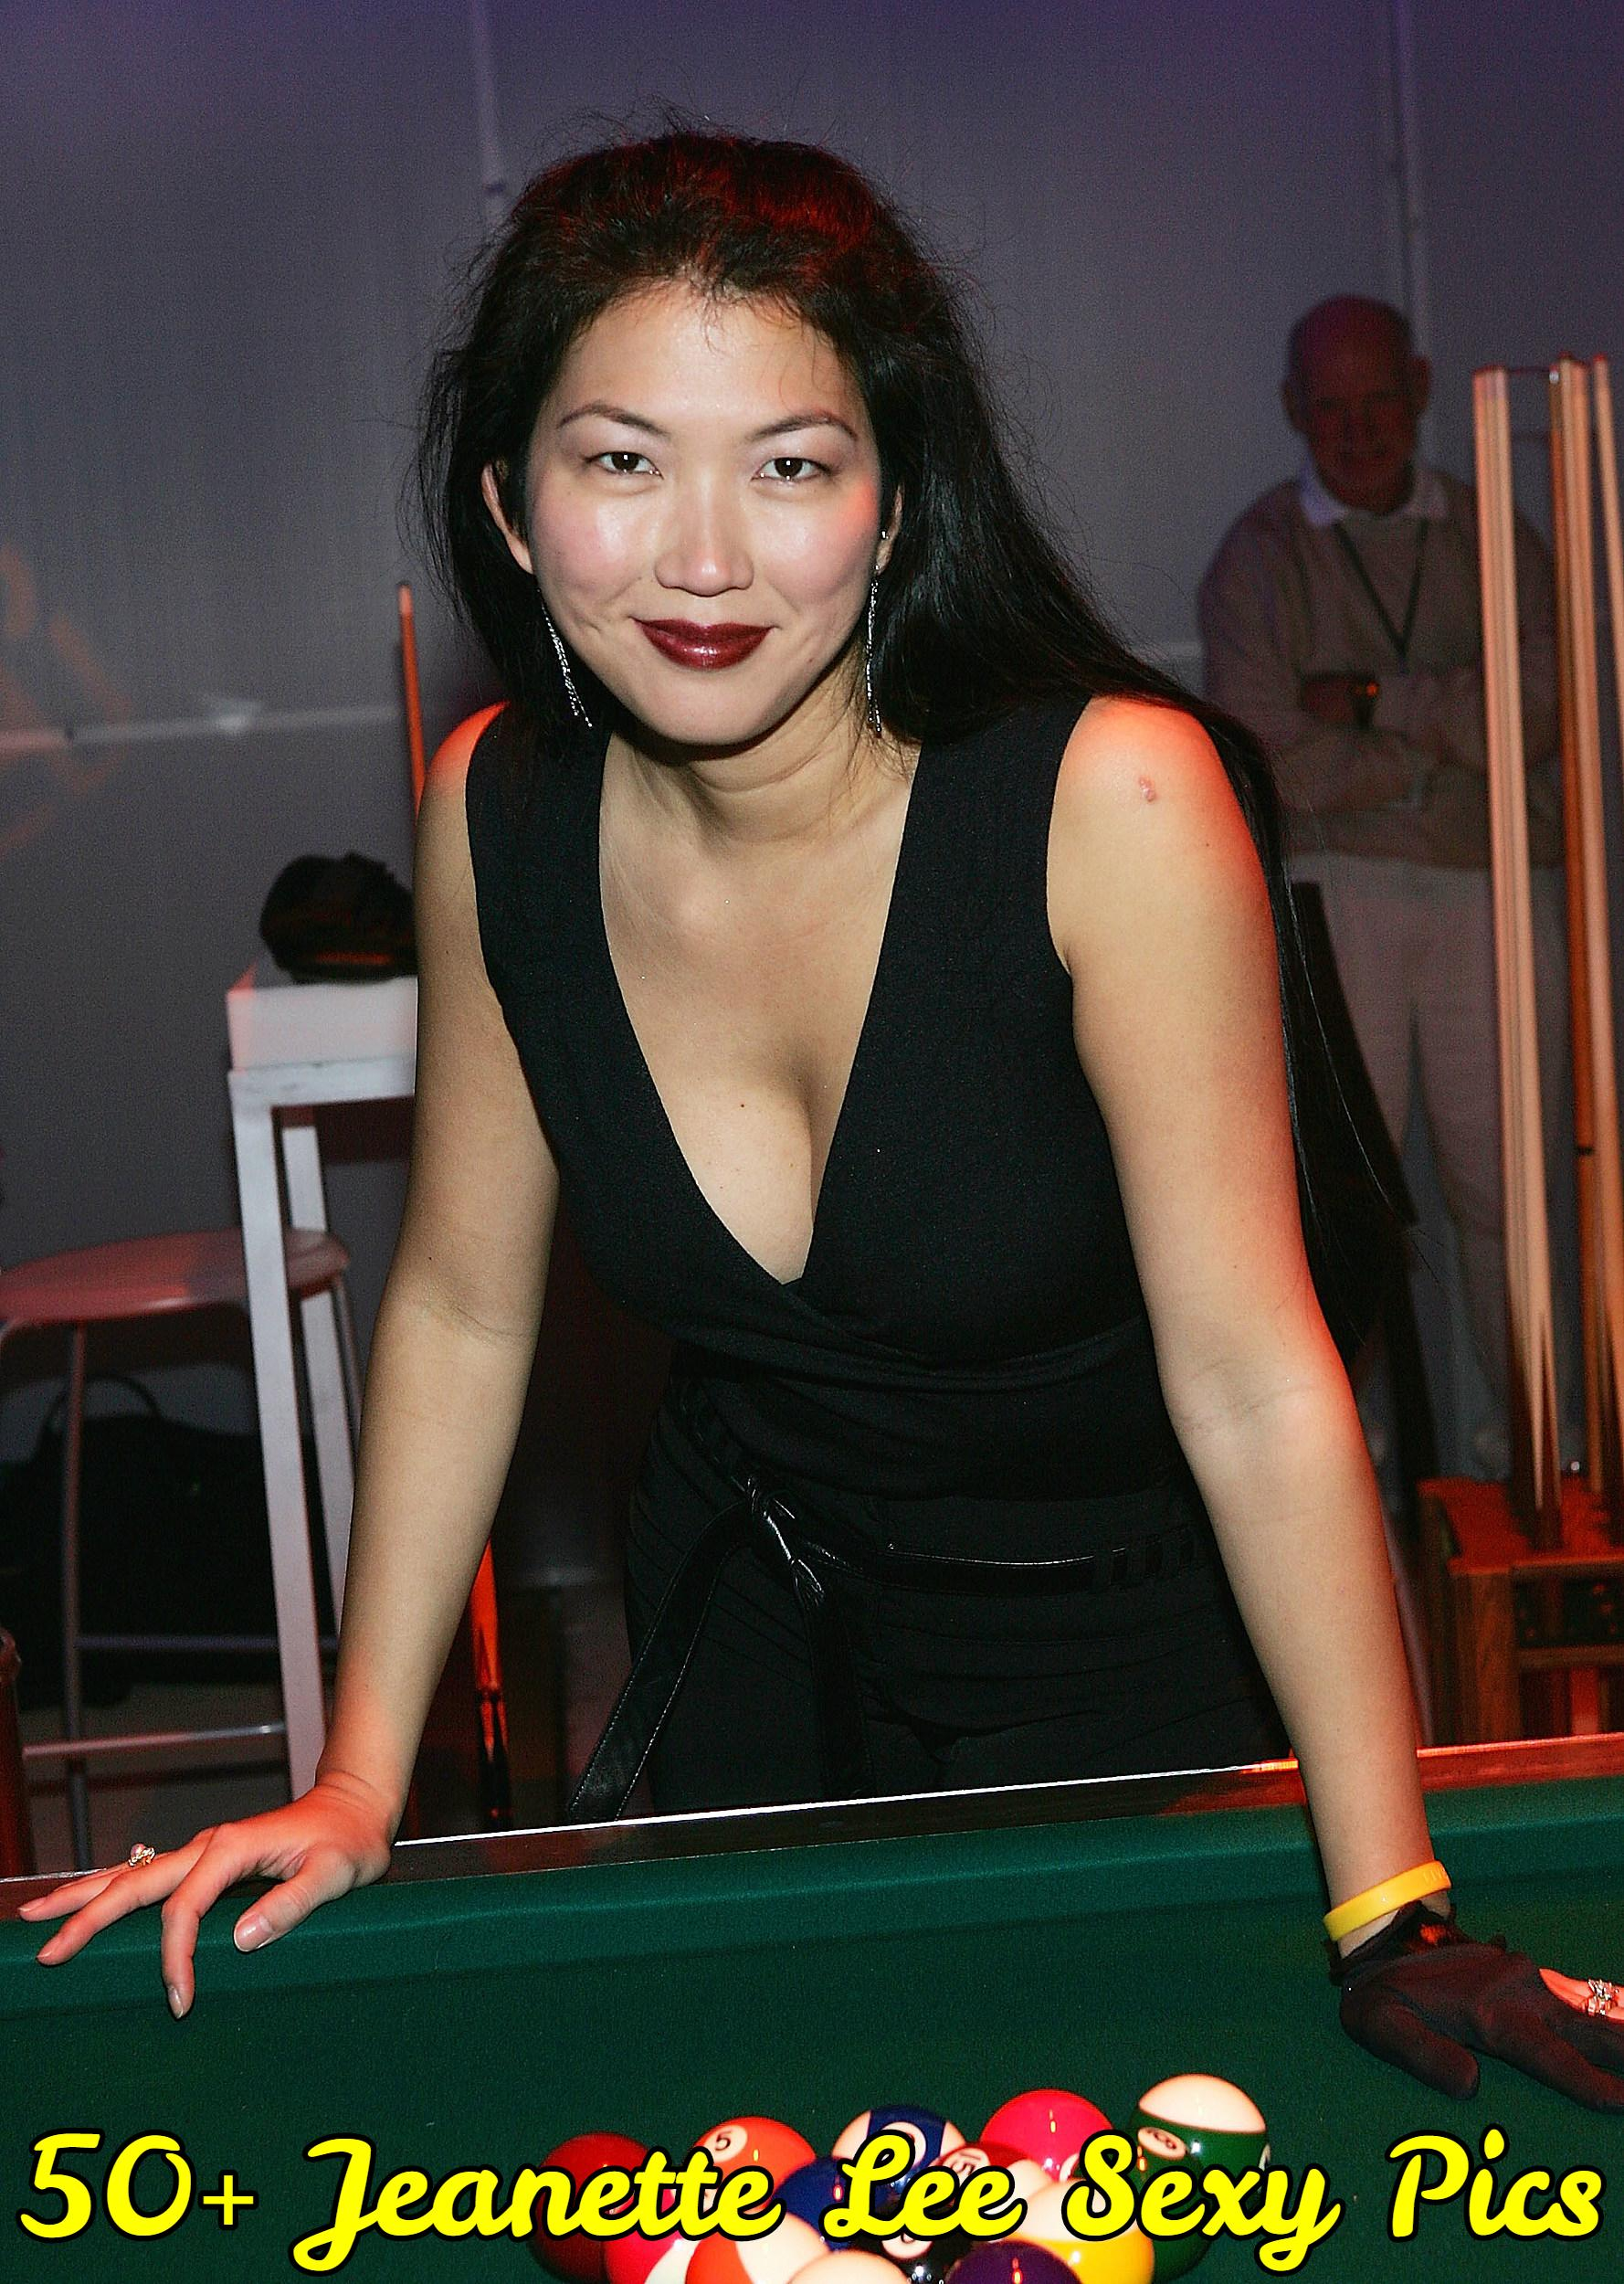 jeanette lee sexy pics